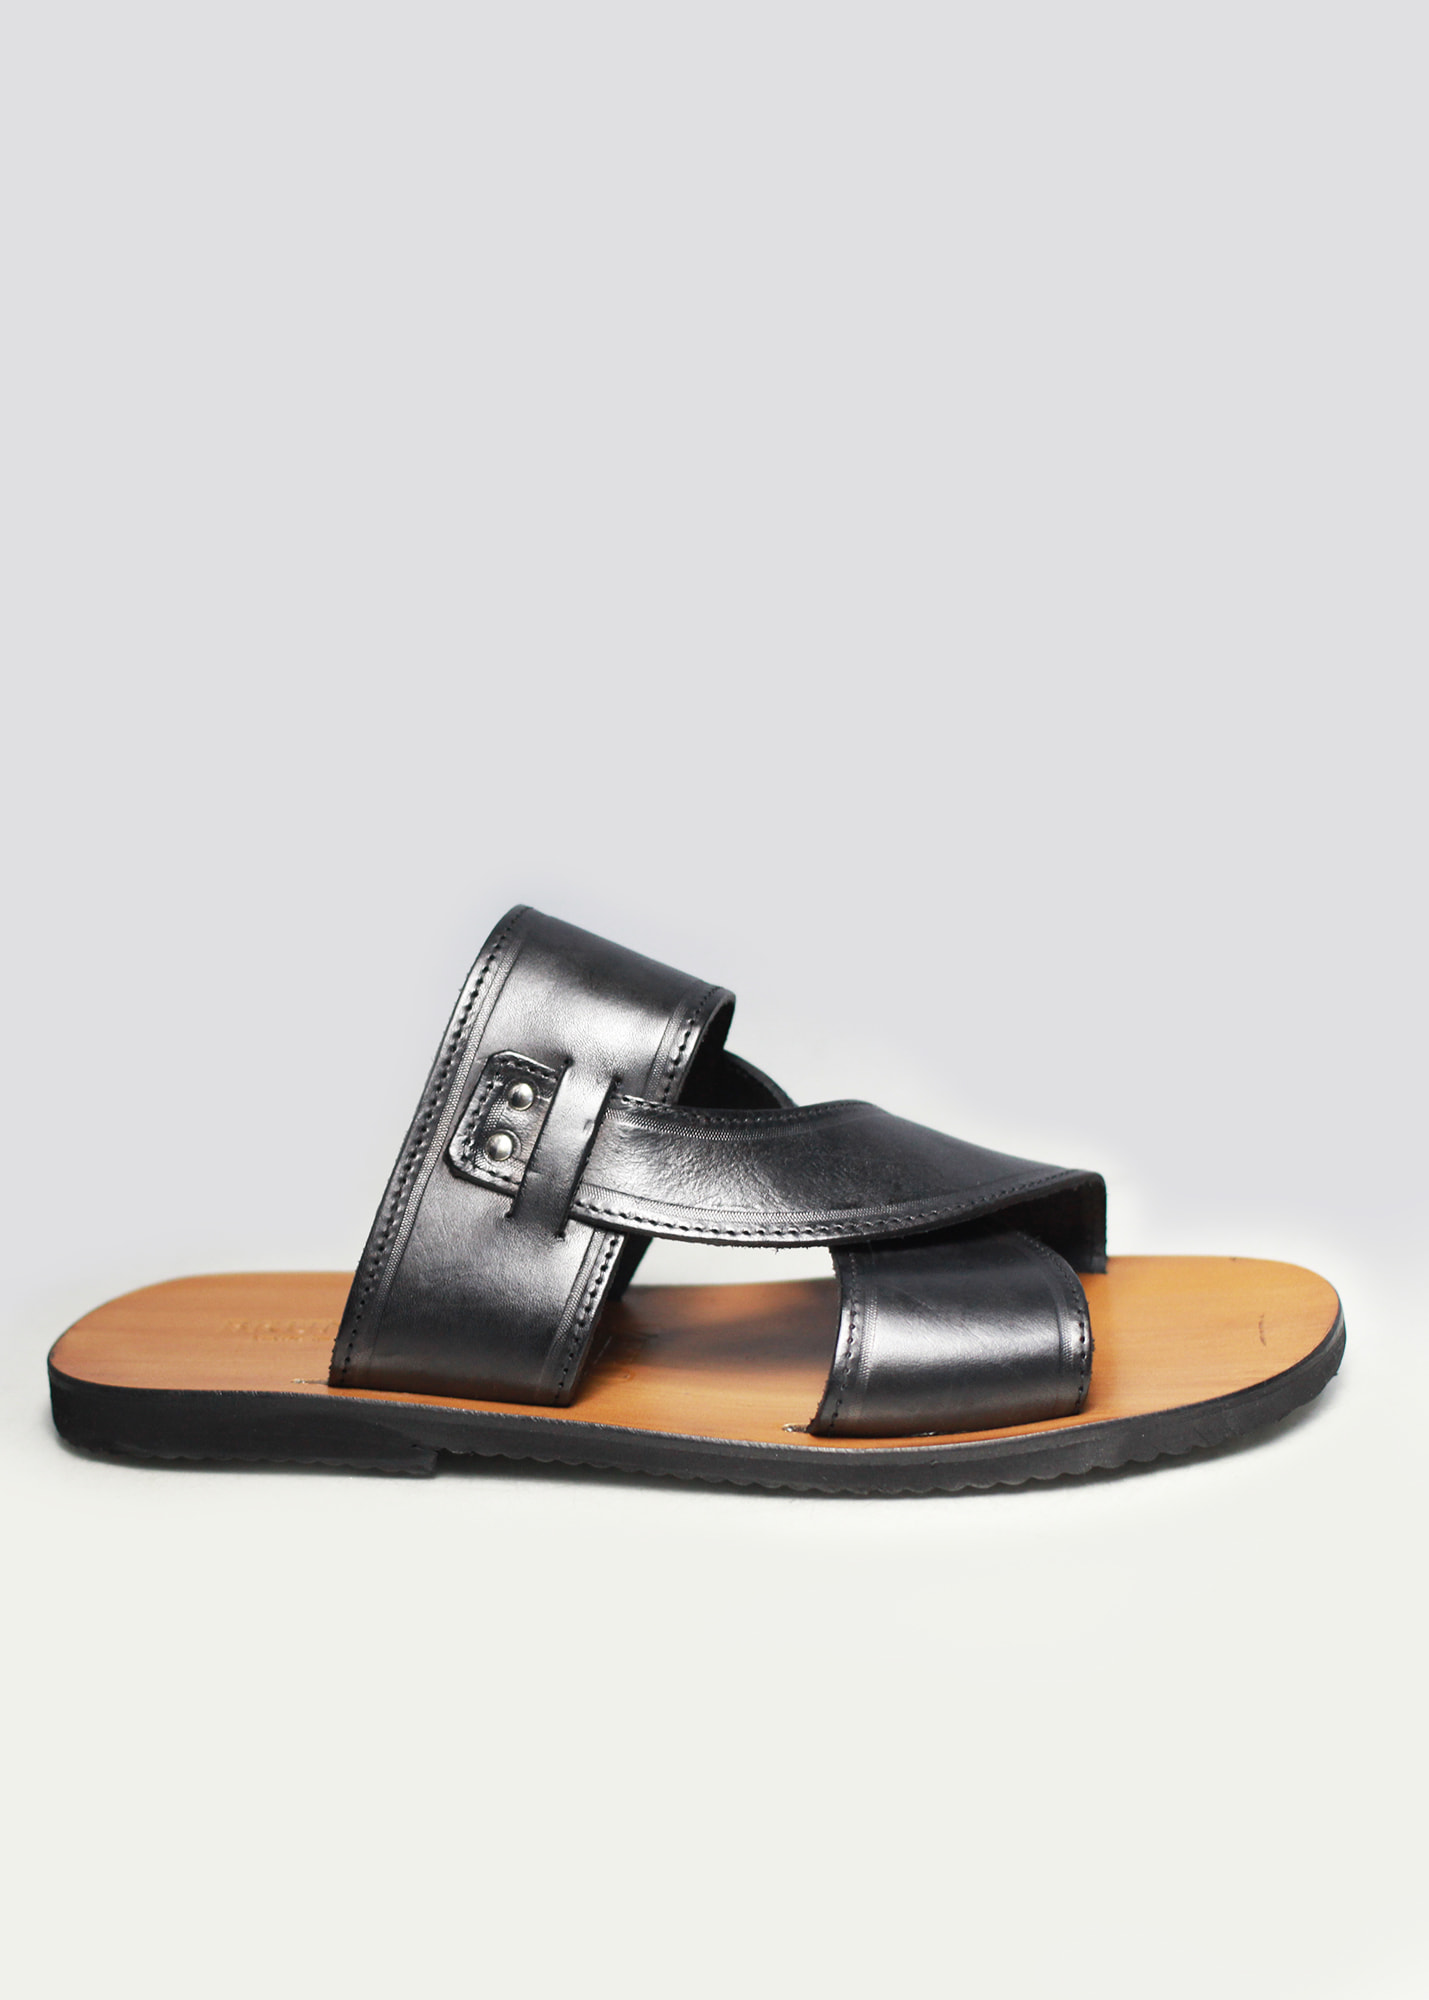 dfc6f580c Italian leather sandals - Clothing store KOKOS